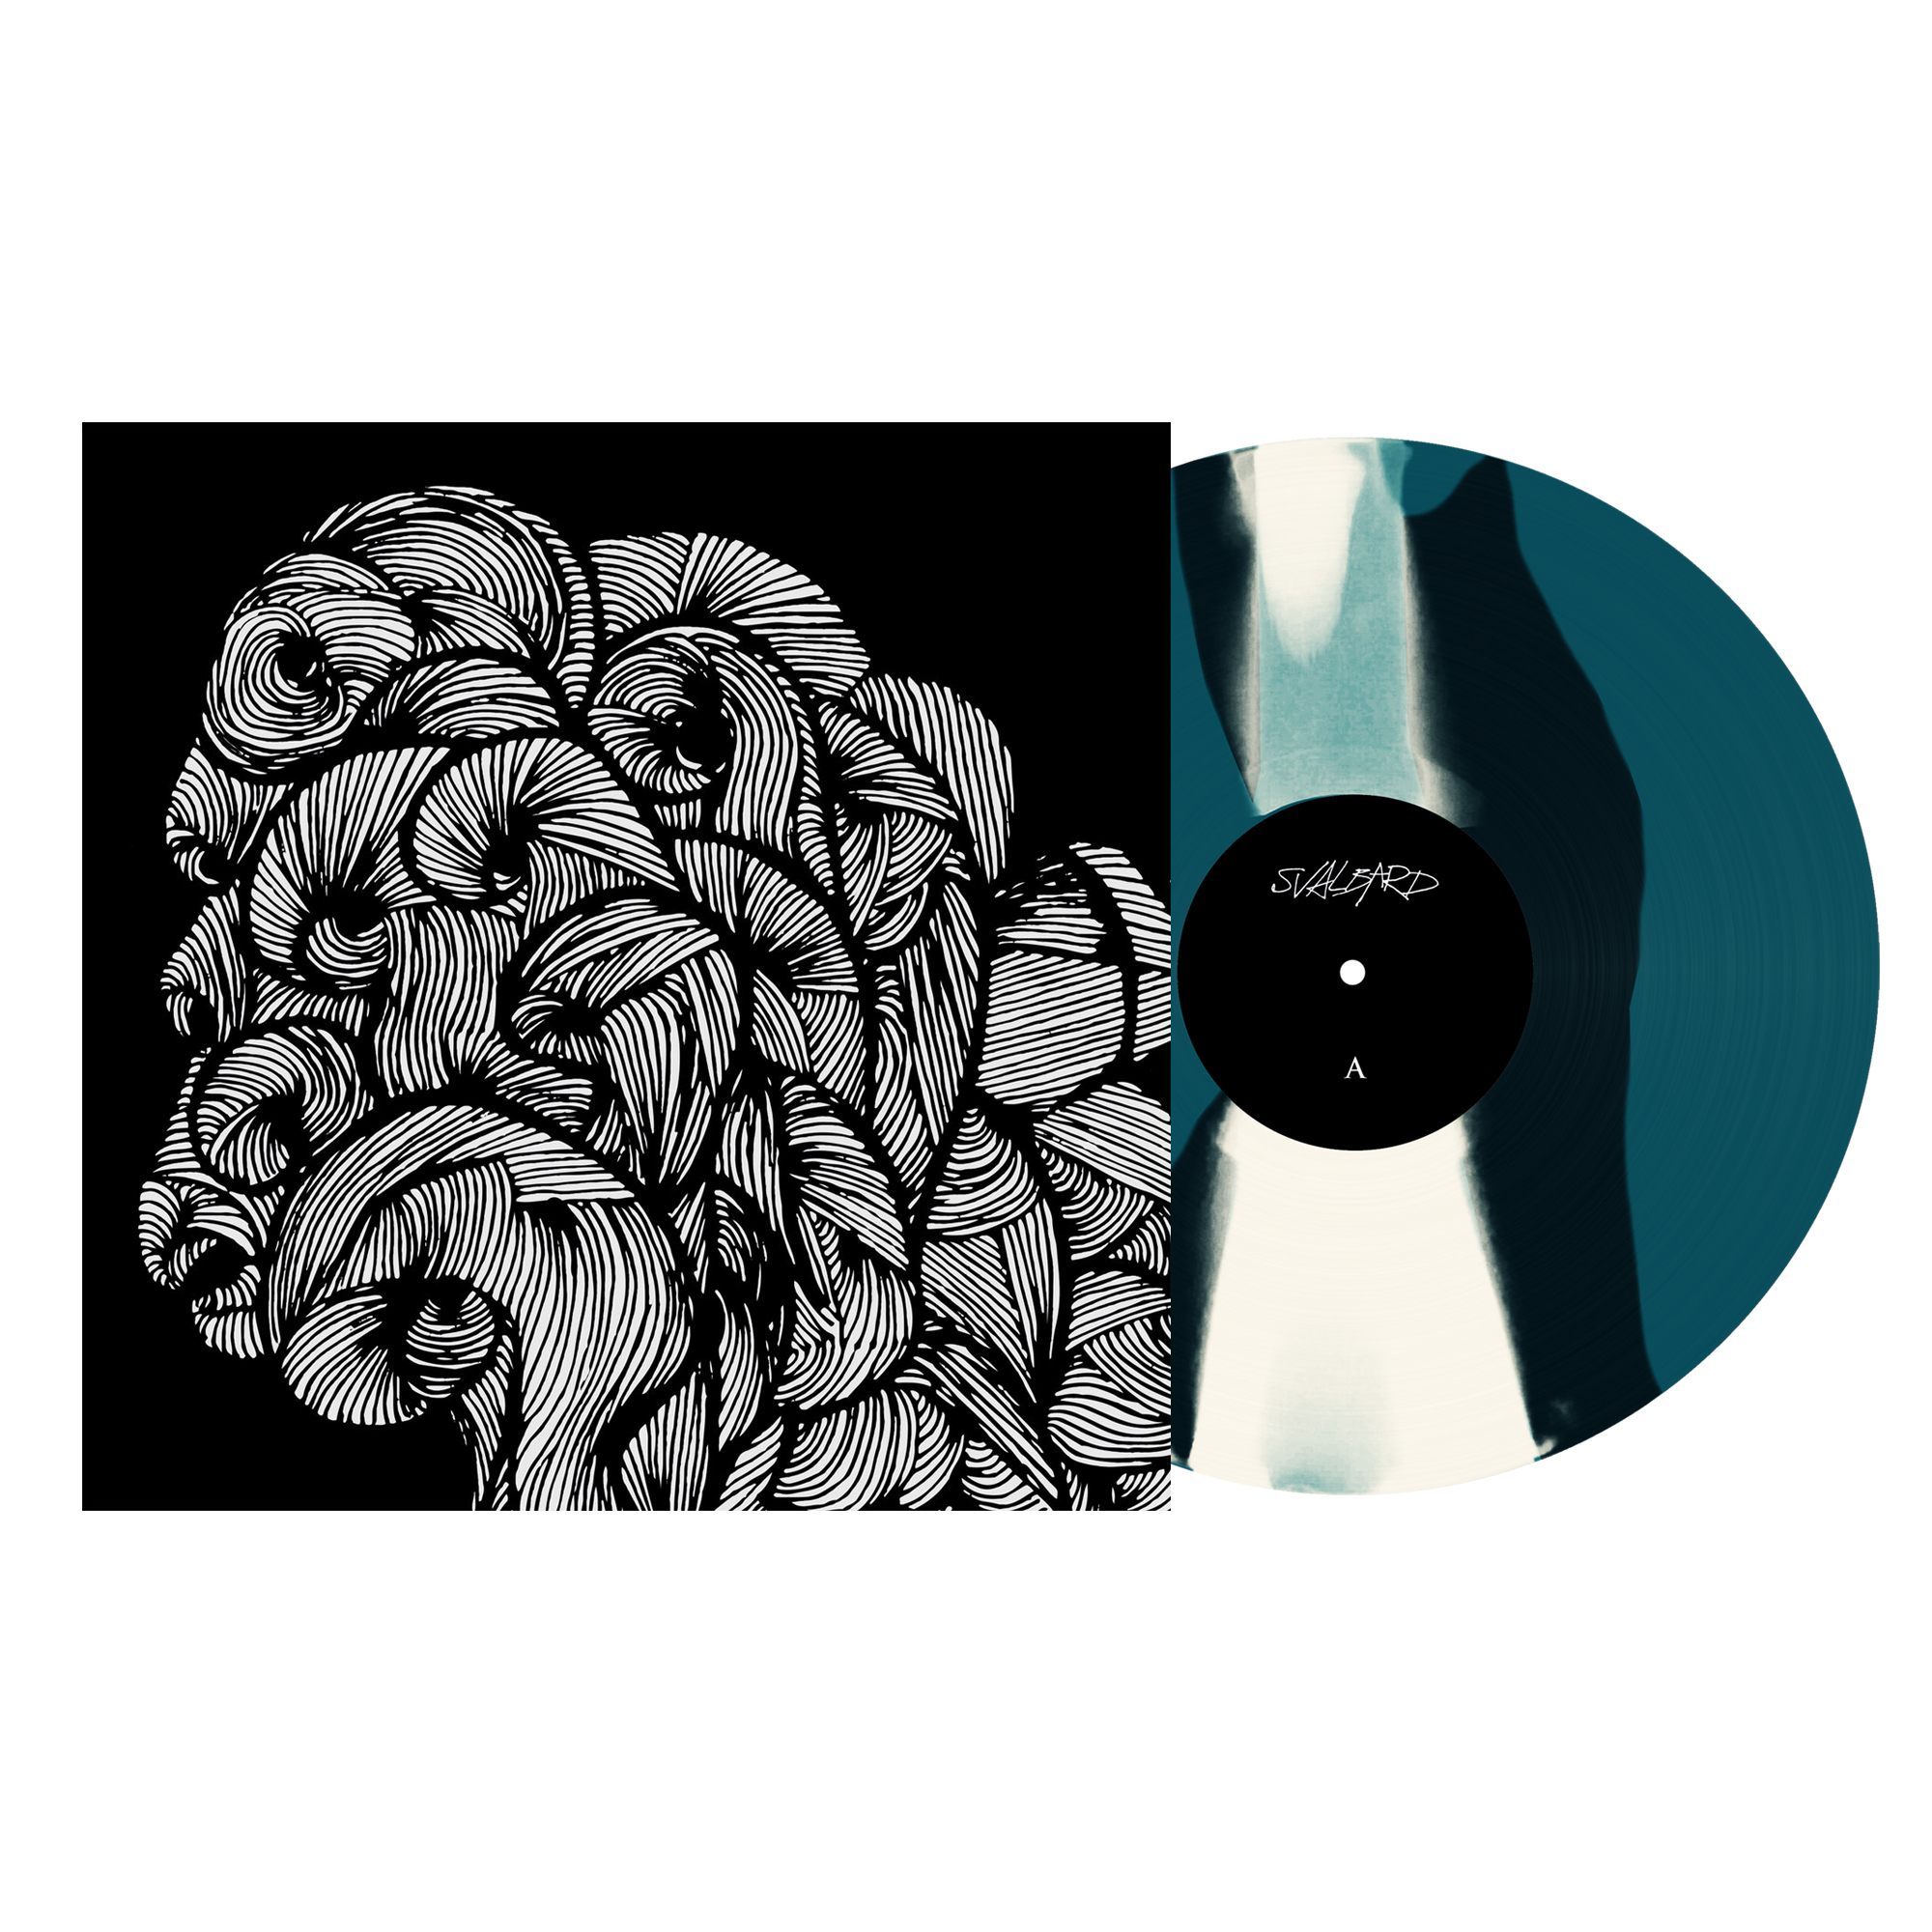 Svalbard - One Day All This Will End PRE-ORDER